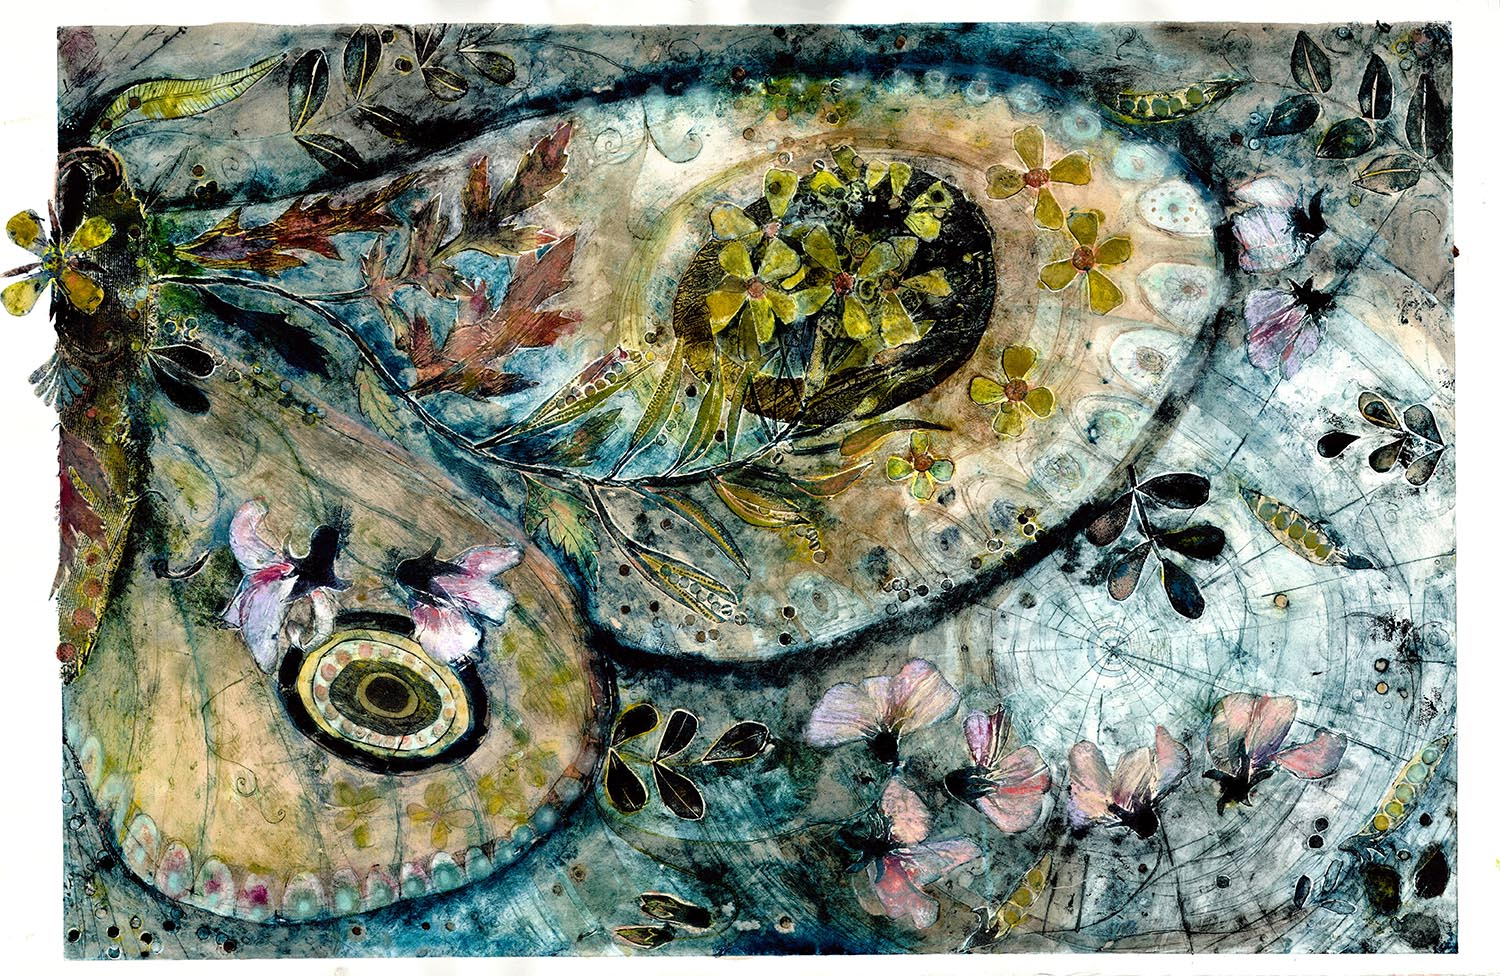 Moth - handcoloured collagraph image 70x45cm white wood framed 91x97cm £495